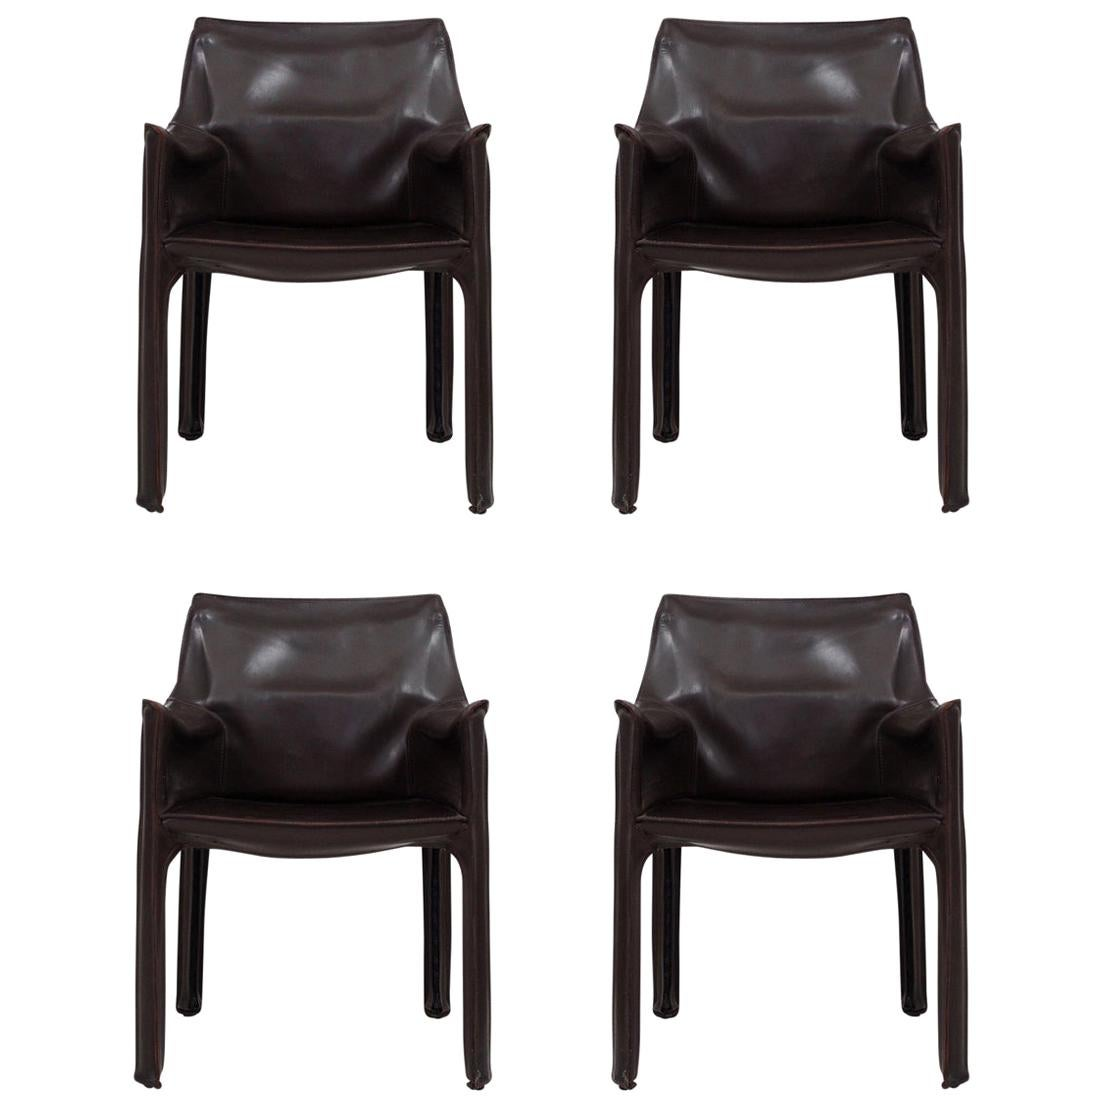 Set of 4 CAB Armchairs by Mario Bellini for Cassina